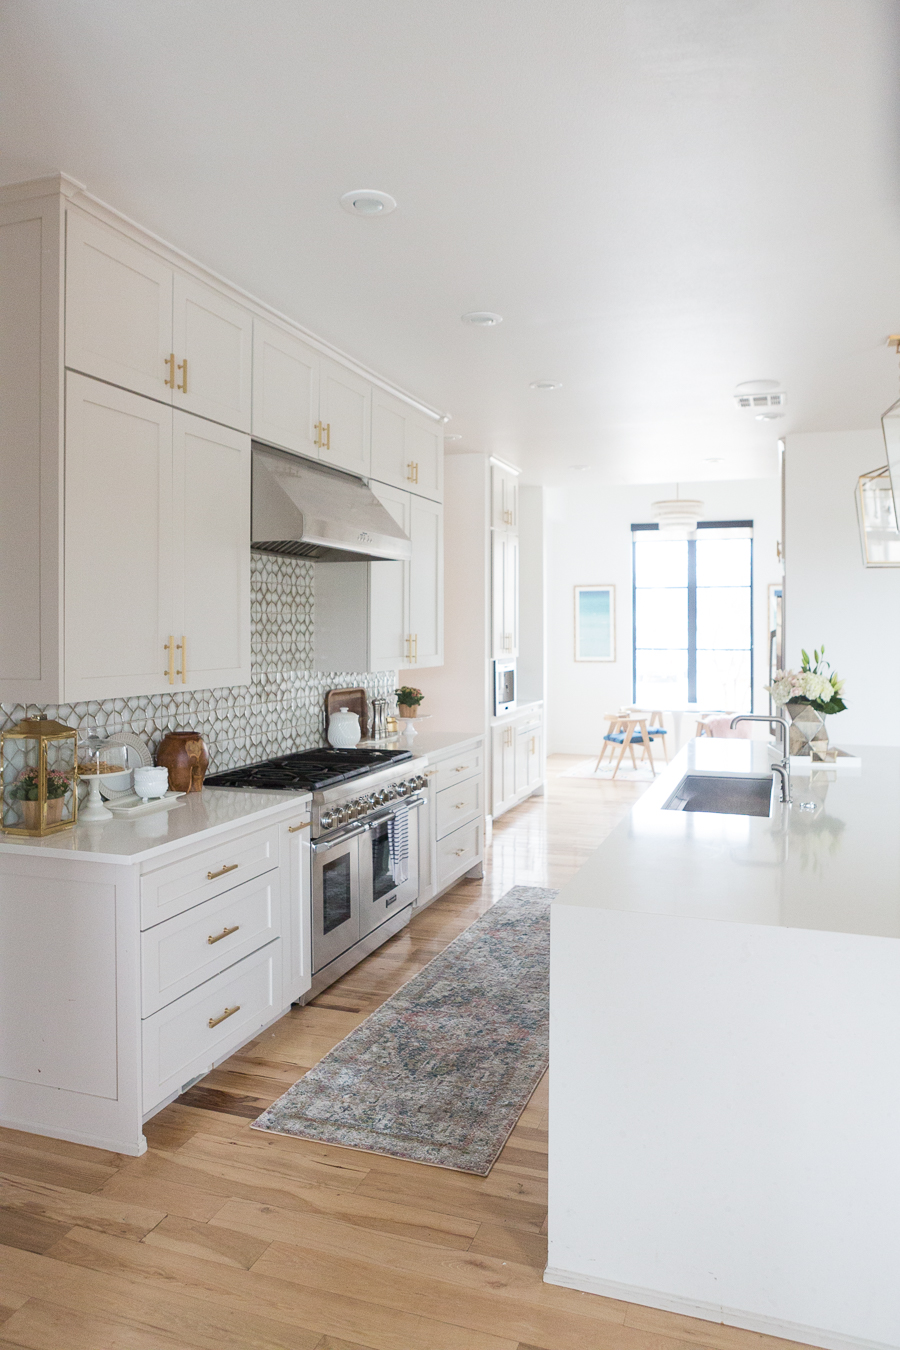 10 Beautiful Kitchen Runners for Your Home wooden floors in white kitchen with white cabinets and countertops with a geometric backsplash and golden accents